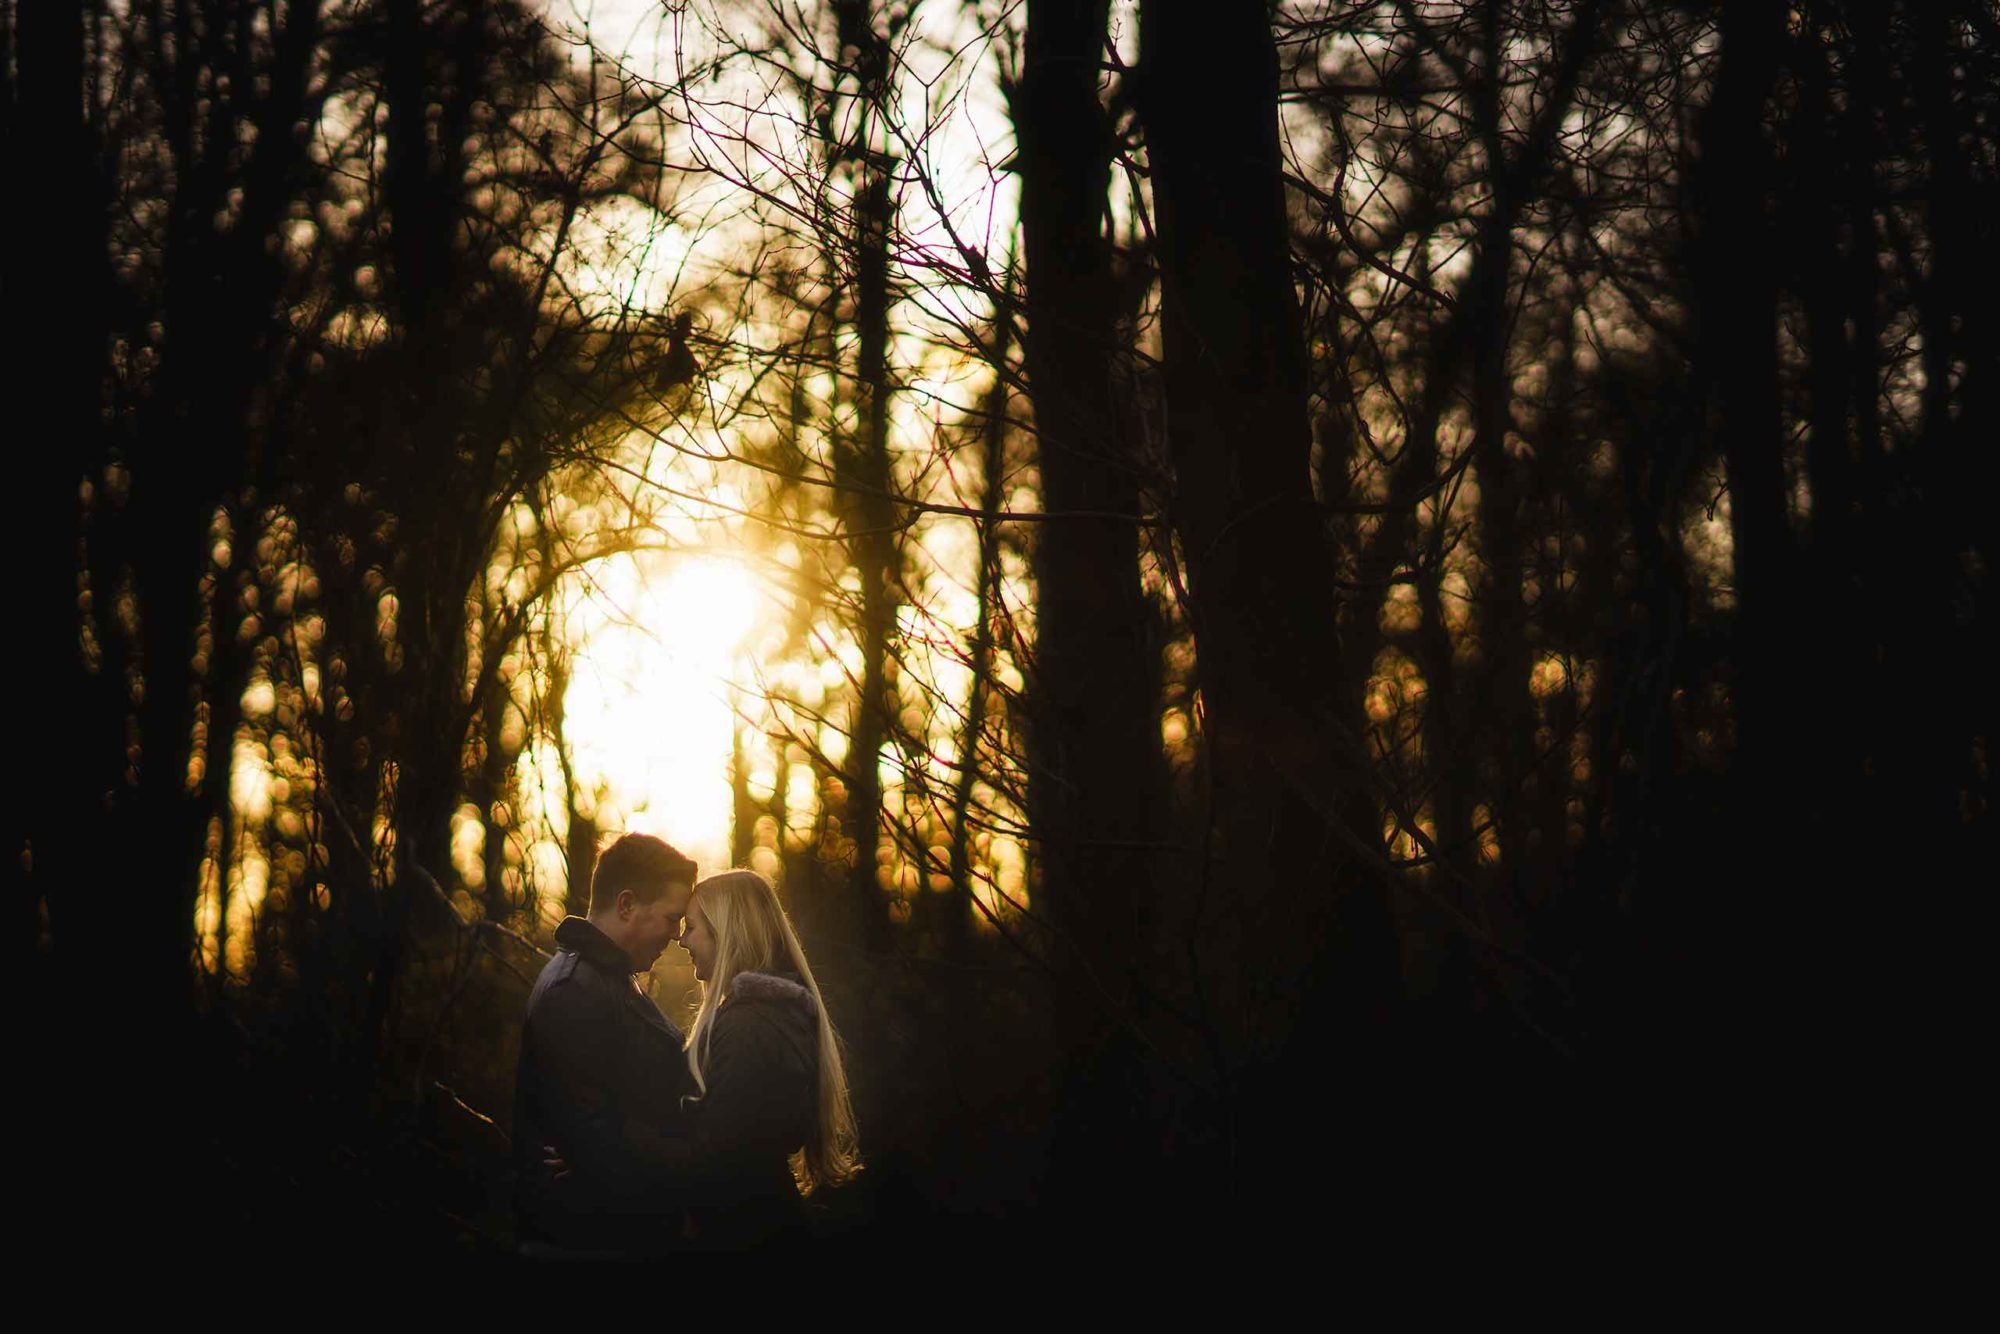 shropshire wedding and portrait photographer captures portrait of young couple